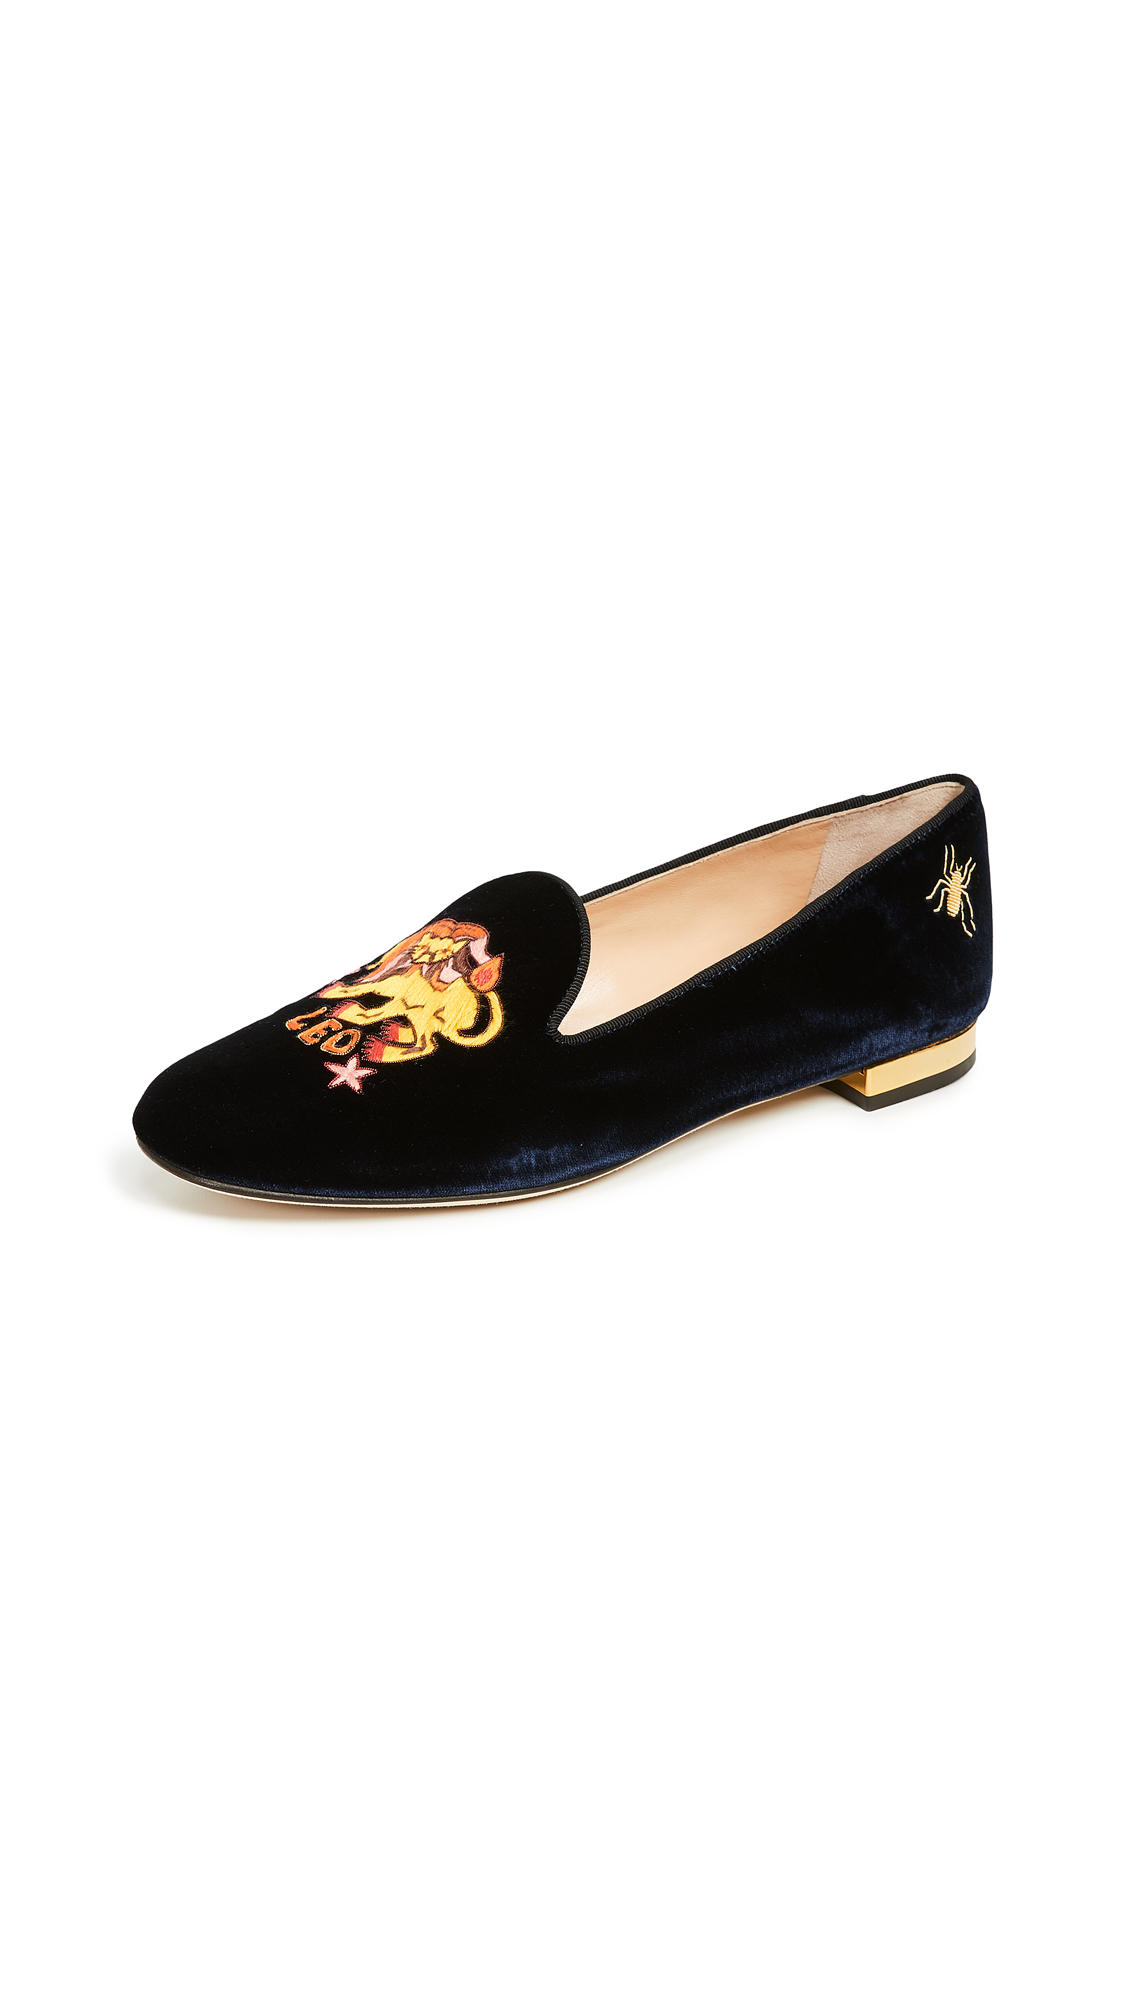 CHARLOTTE OLYMPIA LEO EMBROIDERED FLATS